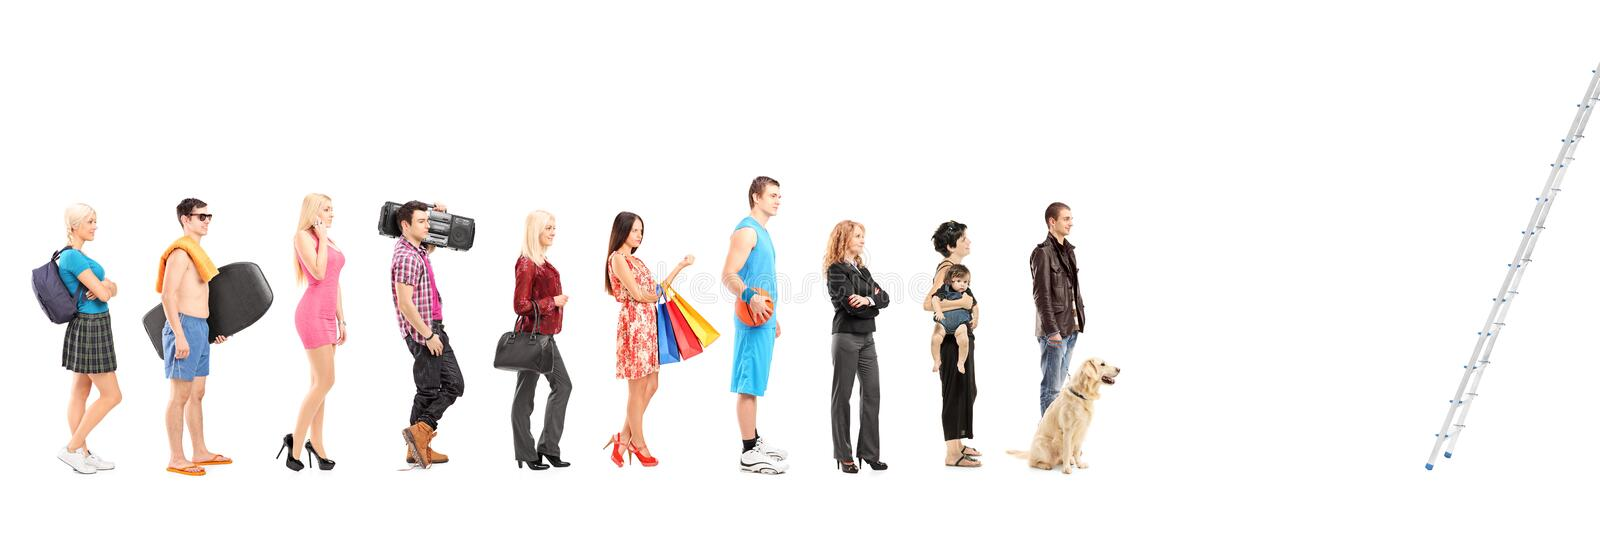 Download Full Length Portraits Of People In A Queue Waiting To Climb A La Stock Photo - Image of fullbody, female: 30993516